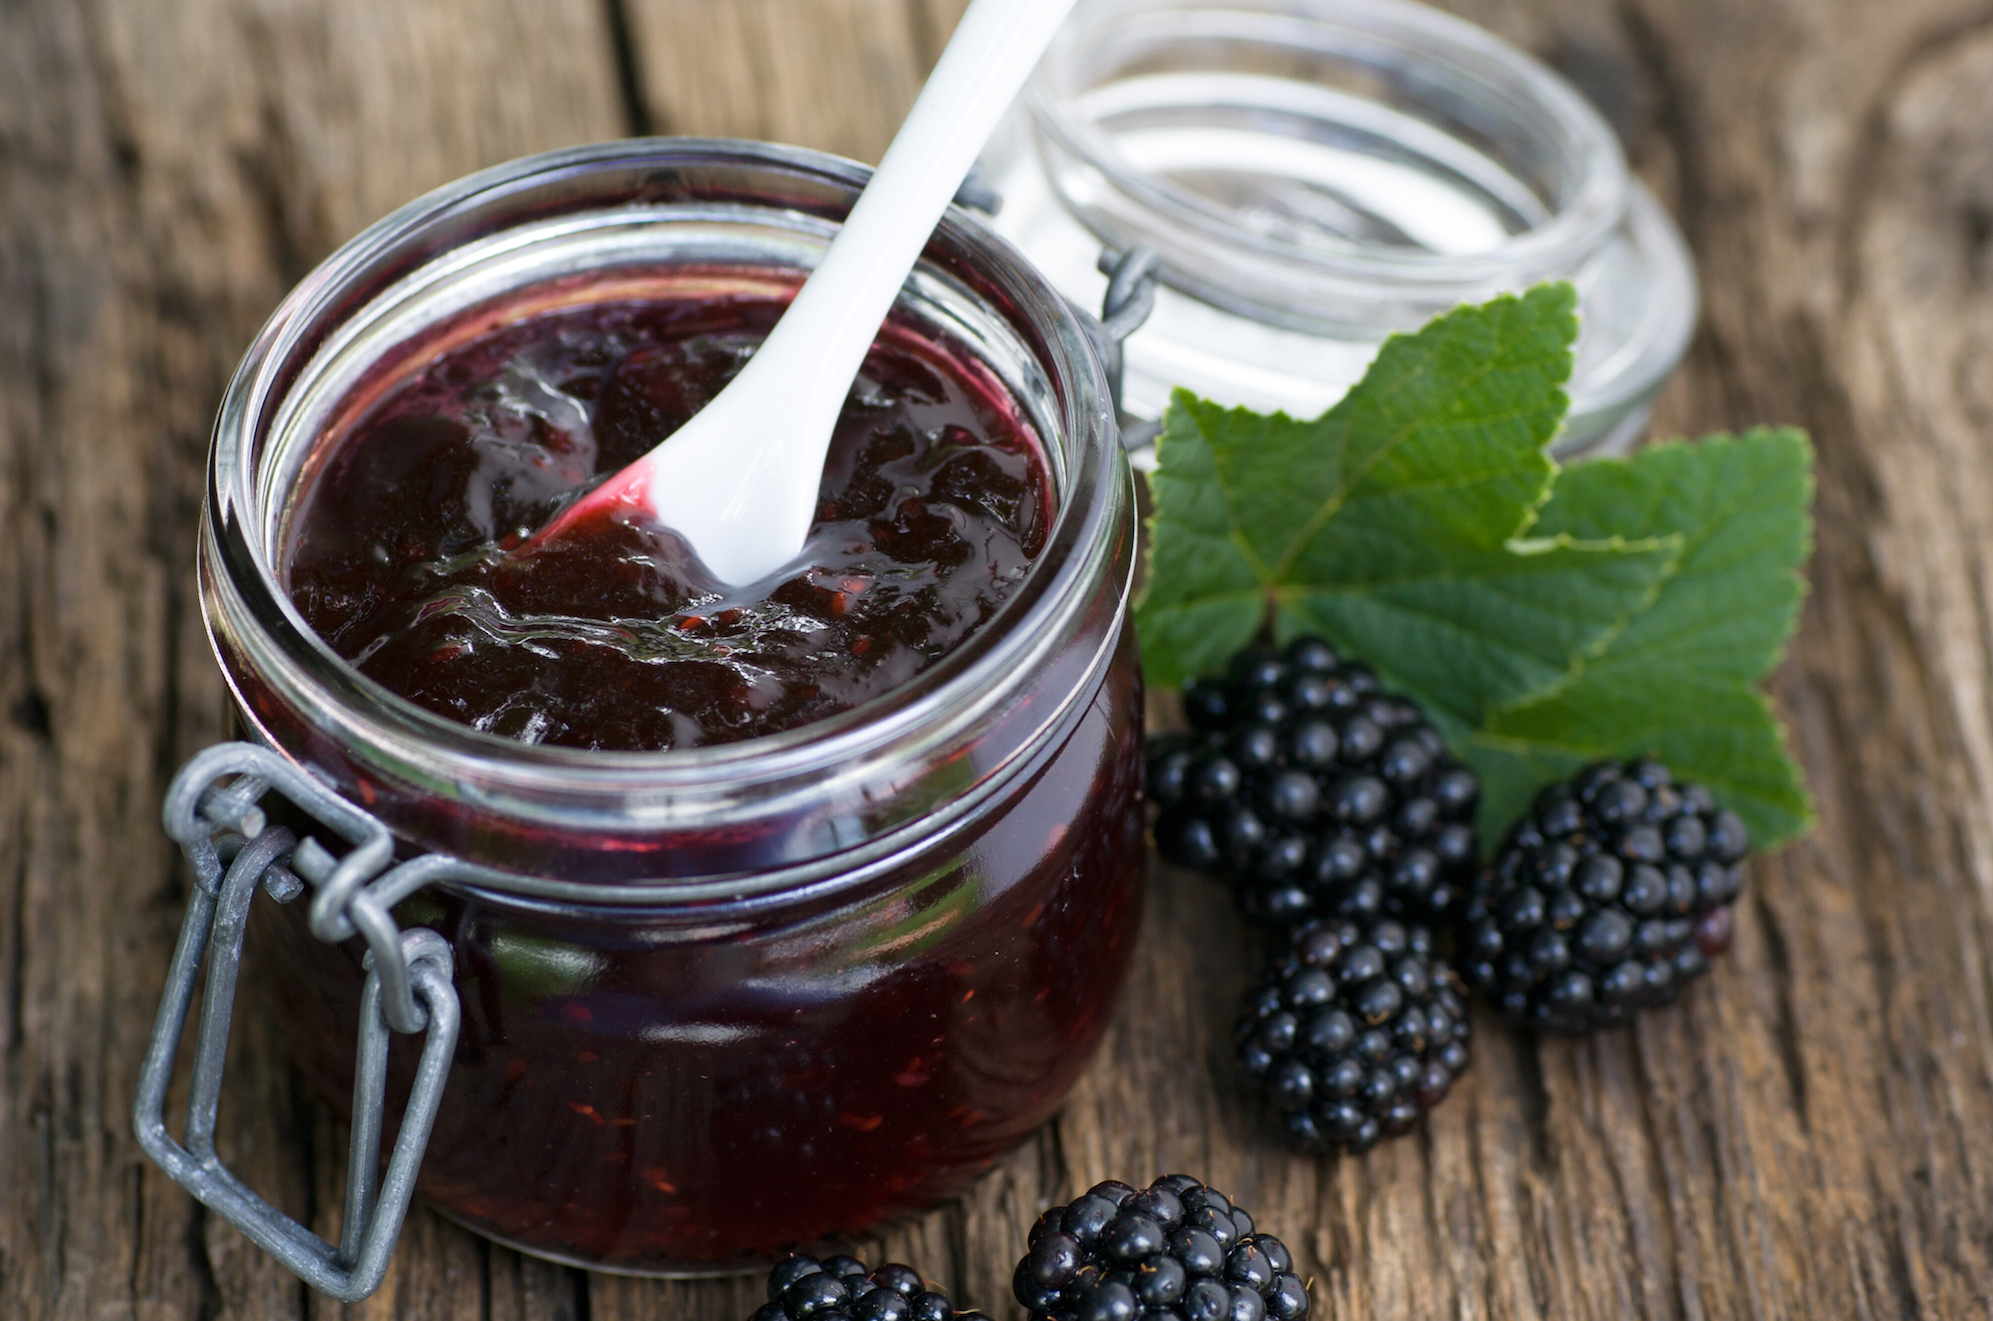 bramen jam zelf maken | recept | betty's kitchen homemade jam recepten